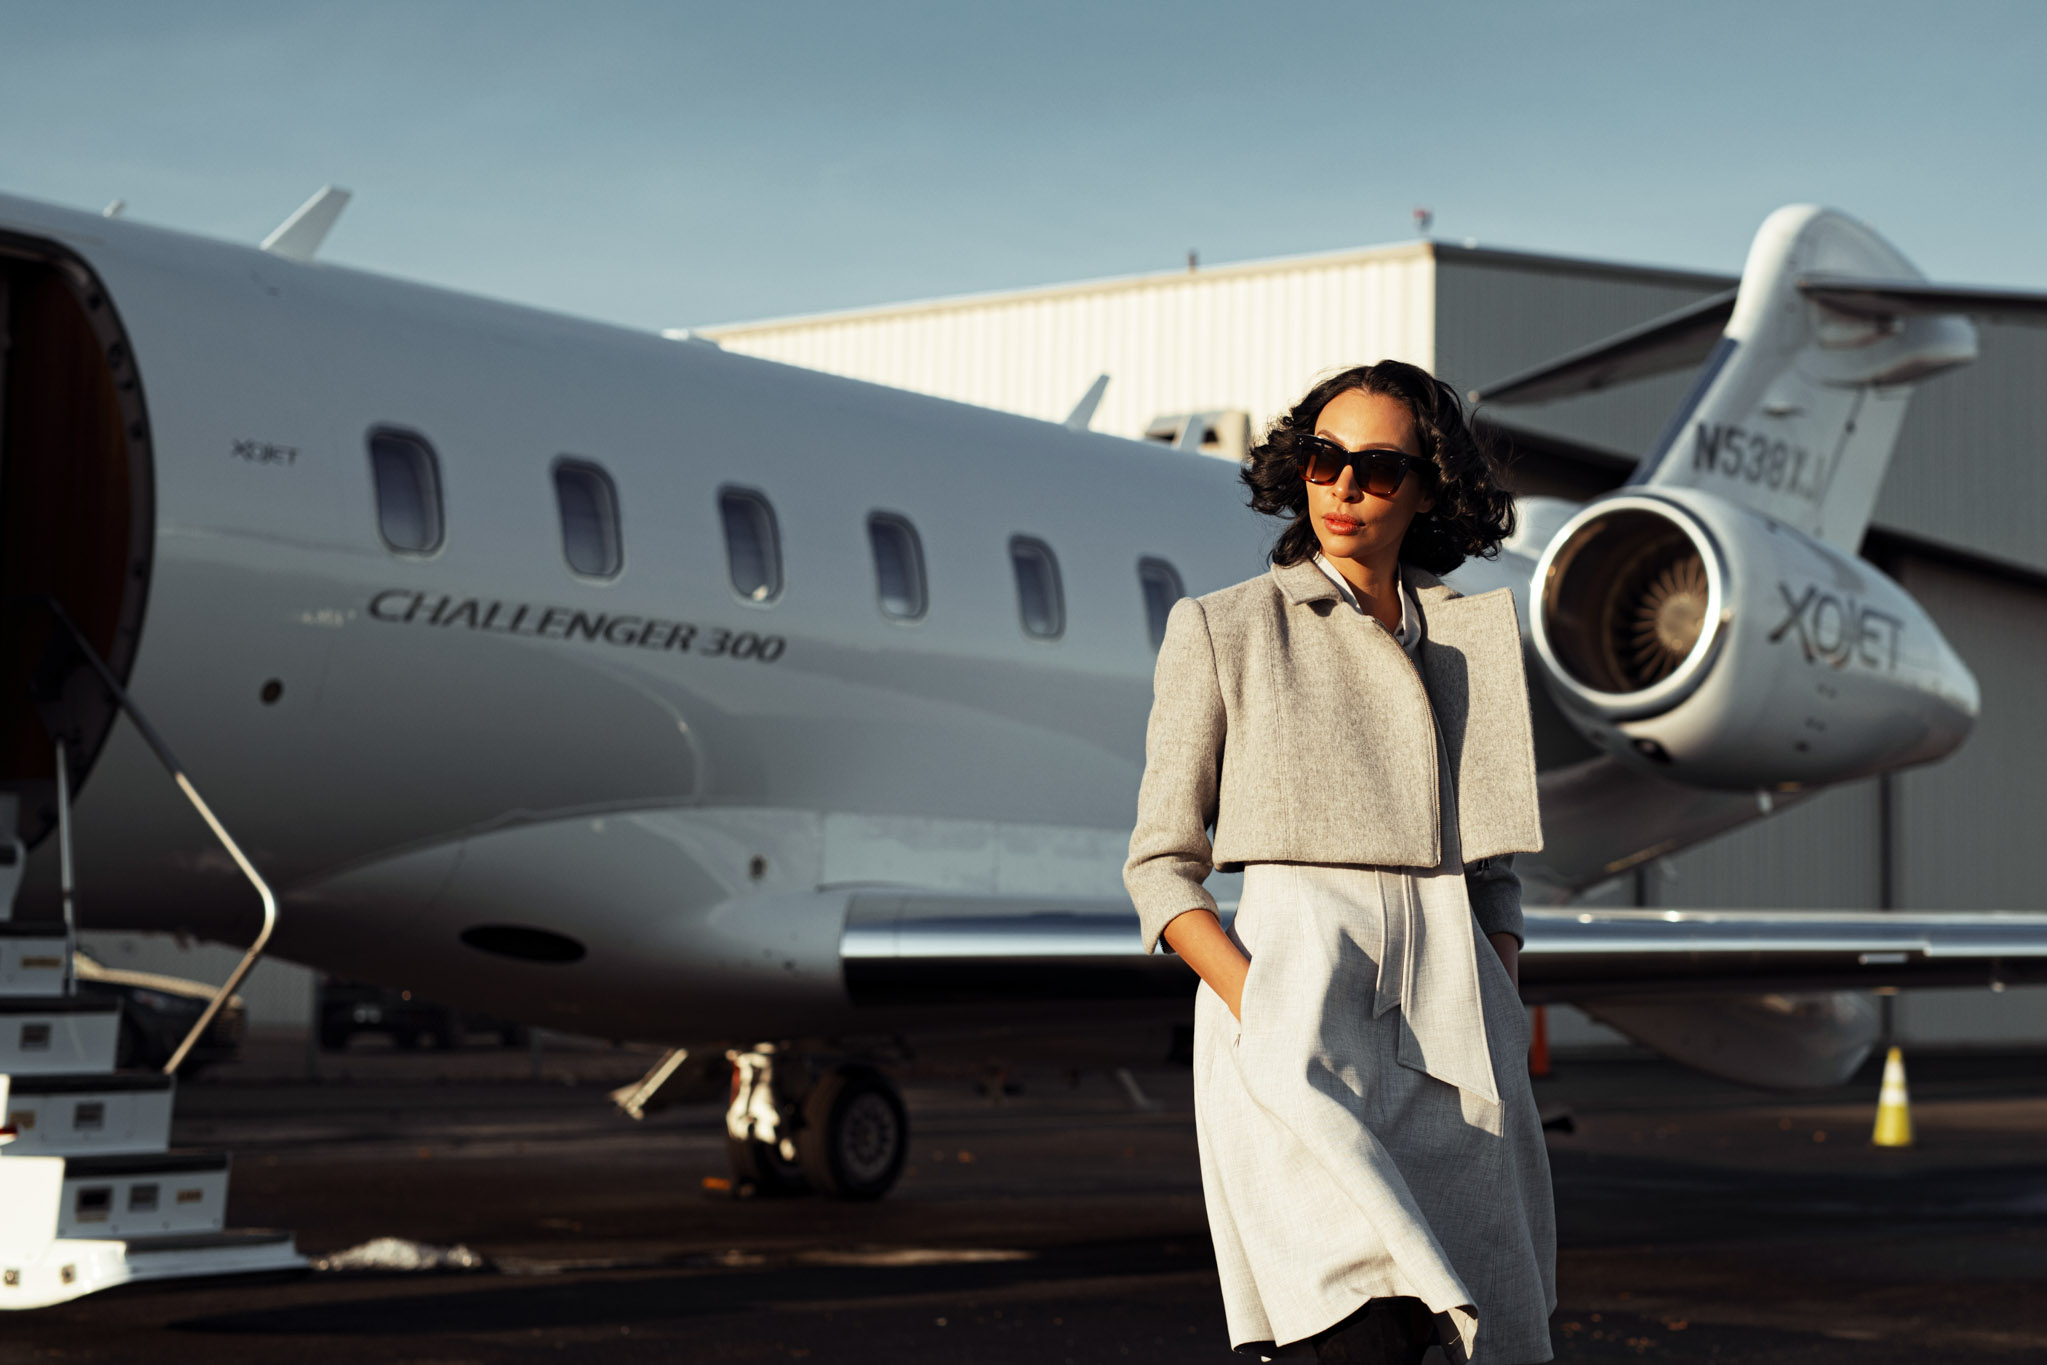 photoshoot of the model with private jets